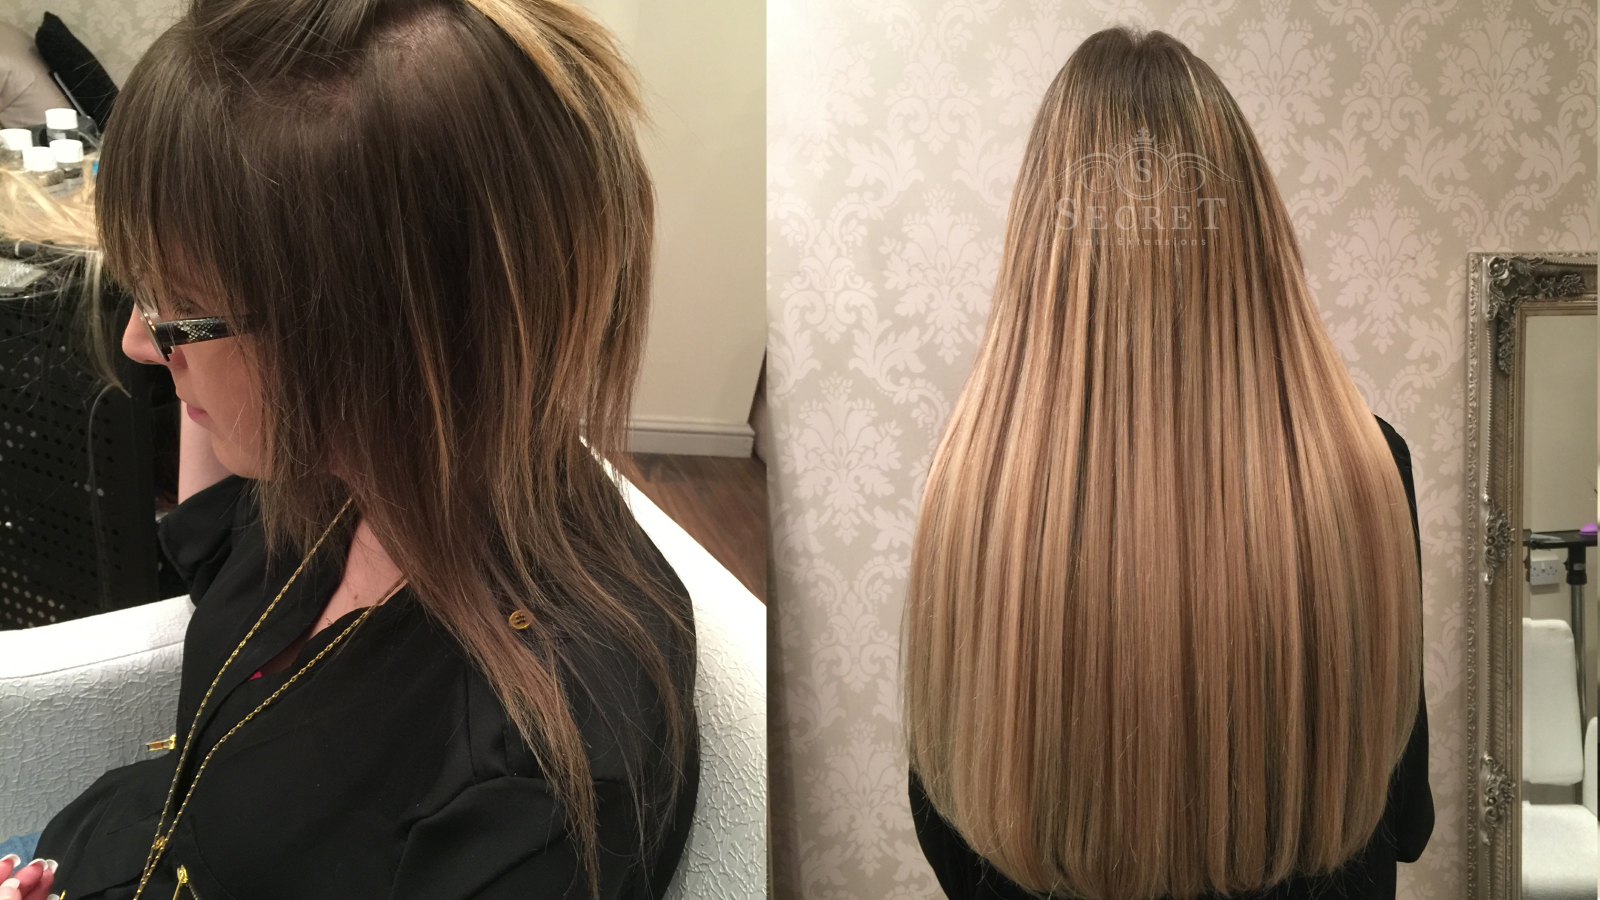 Hair Extensions Before And After 02 Secret Hair Extensions